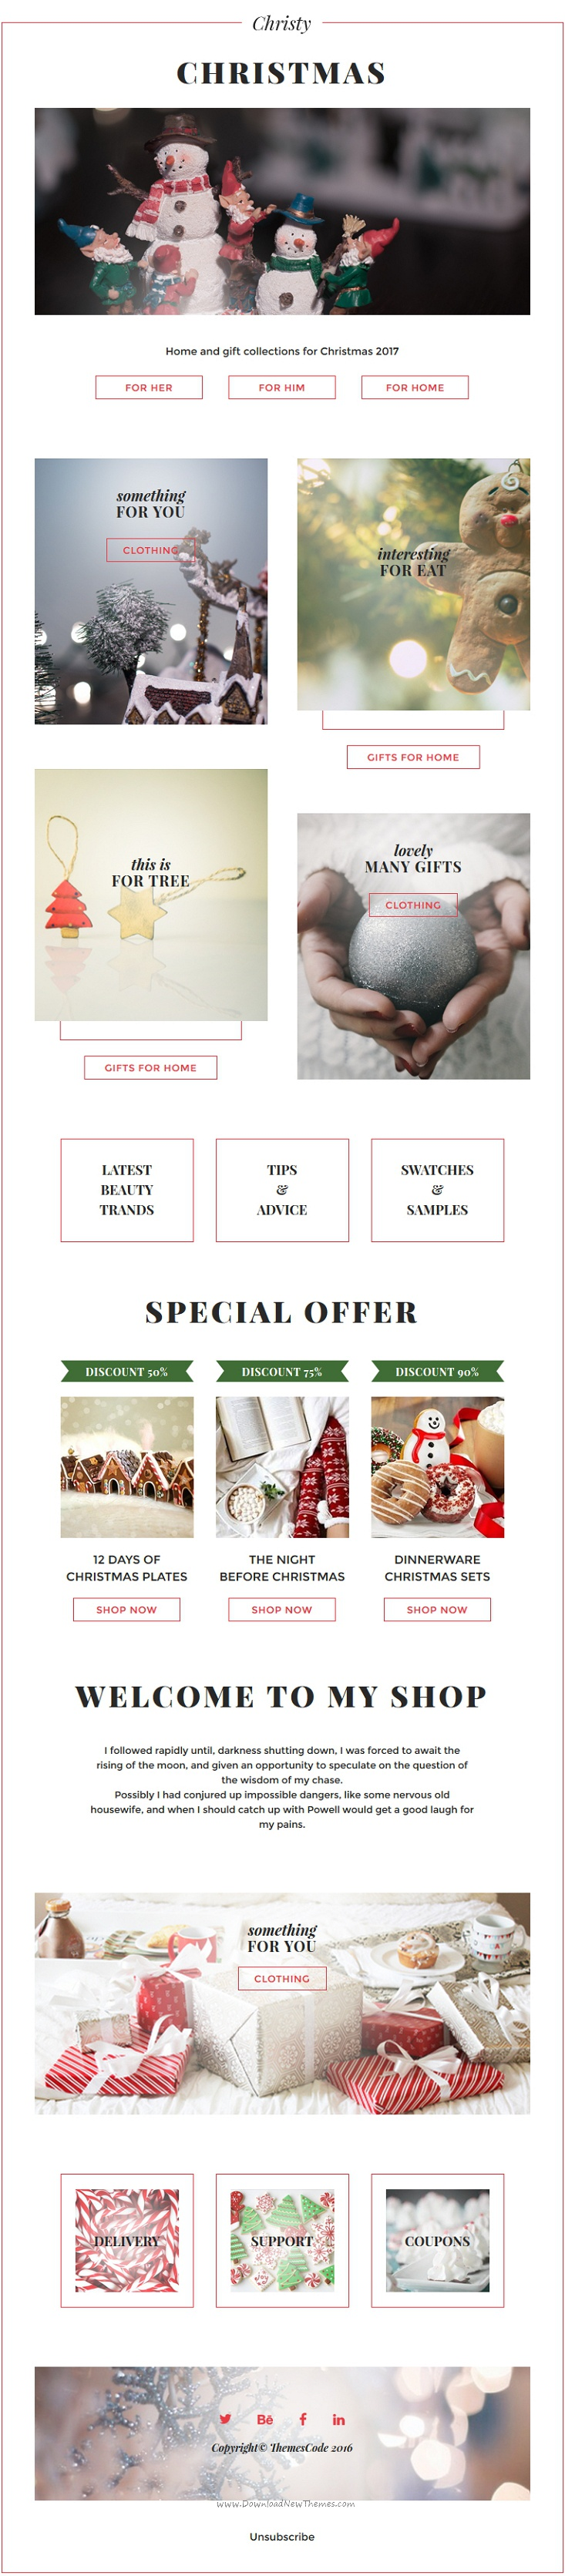 Christy  Christmas Email Templates Set  Stampready Builder